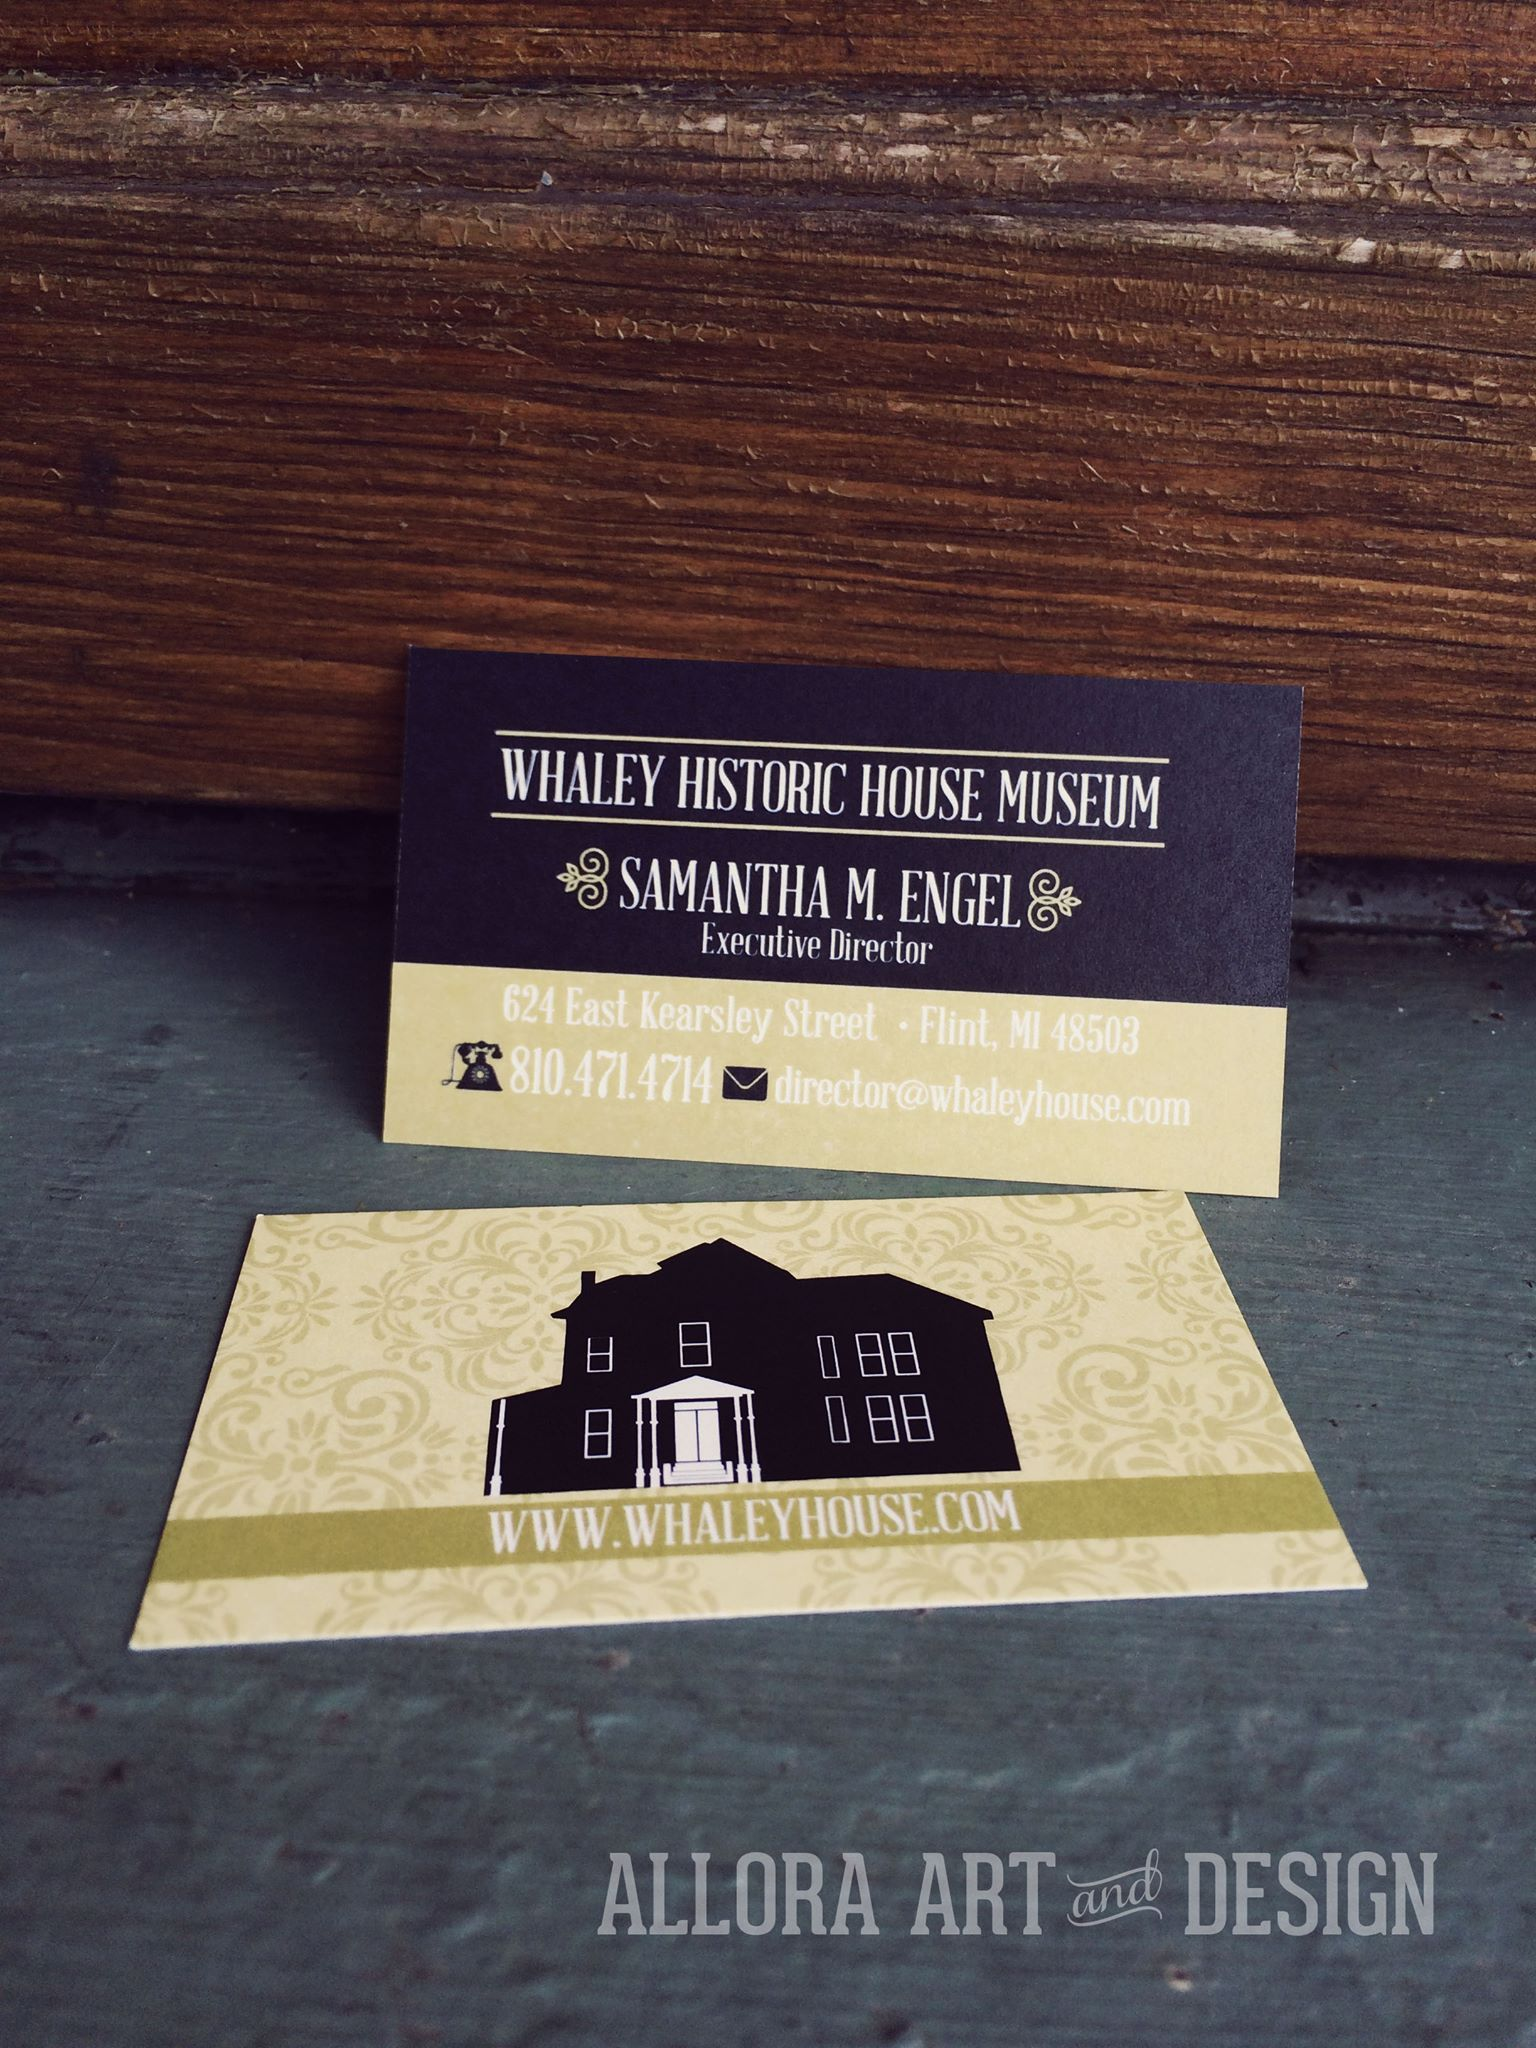 Business card design for the whaley historic house museum in flint business card design for the whaley historic house museum in flint michigan the custom colourmoves